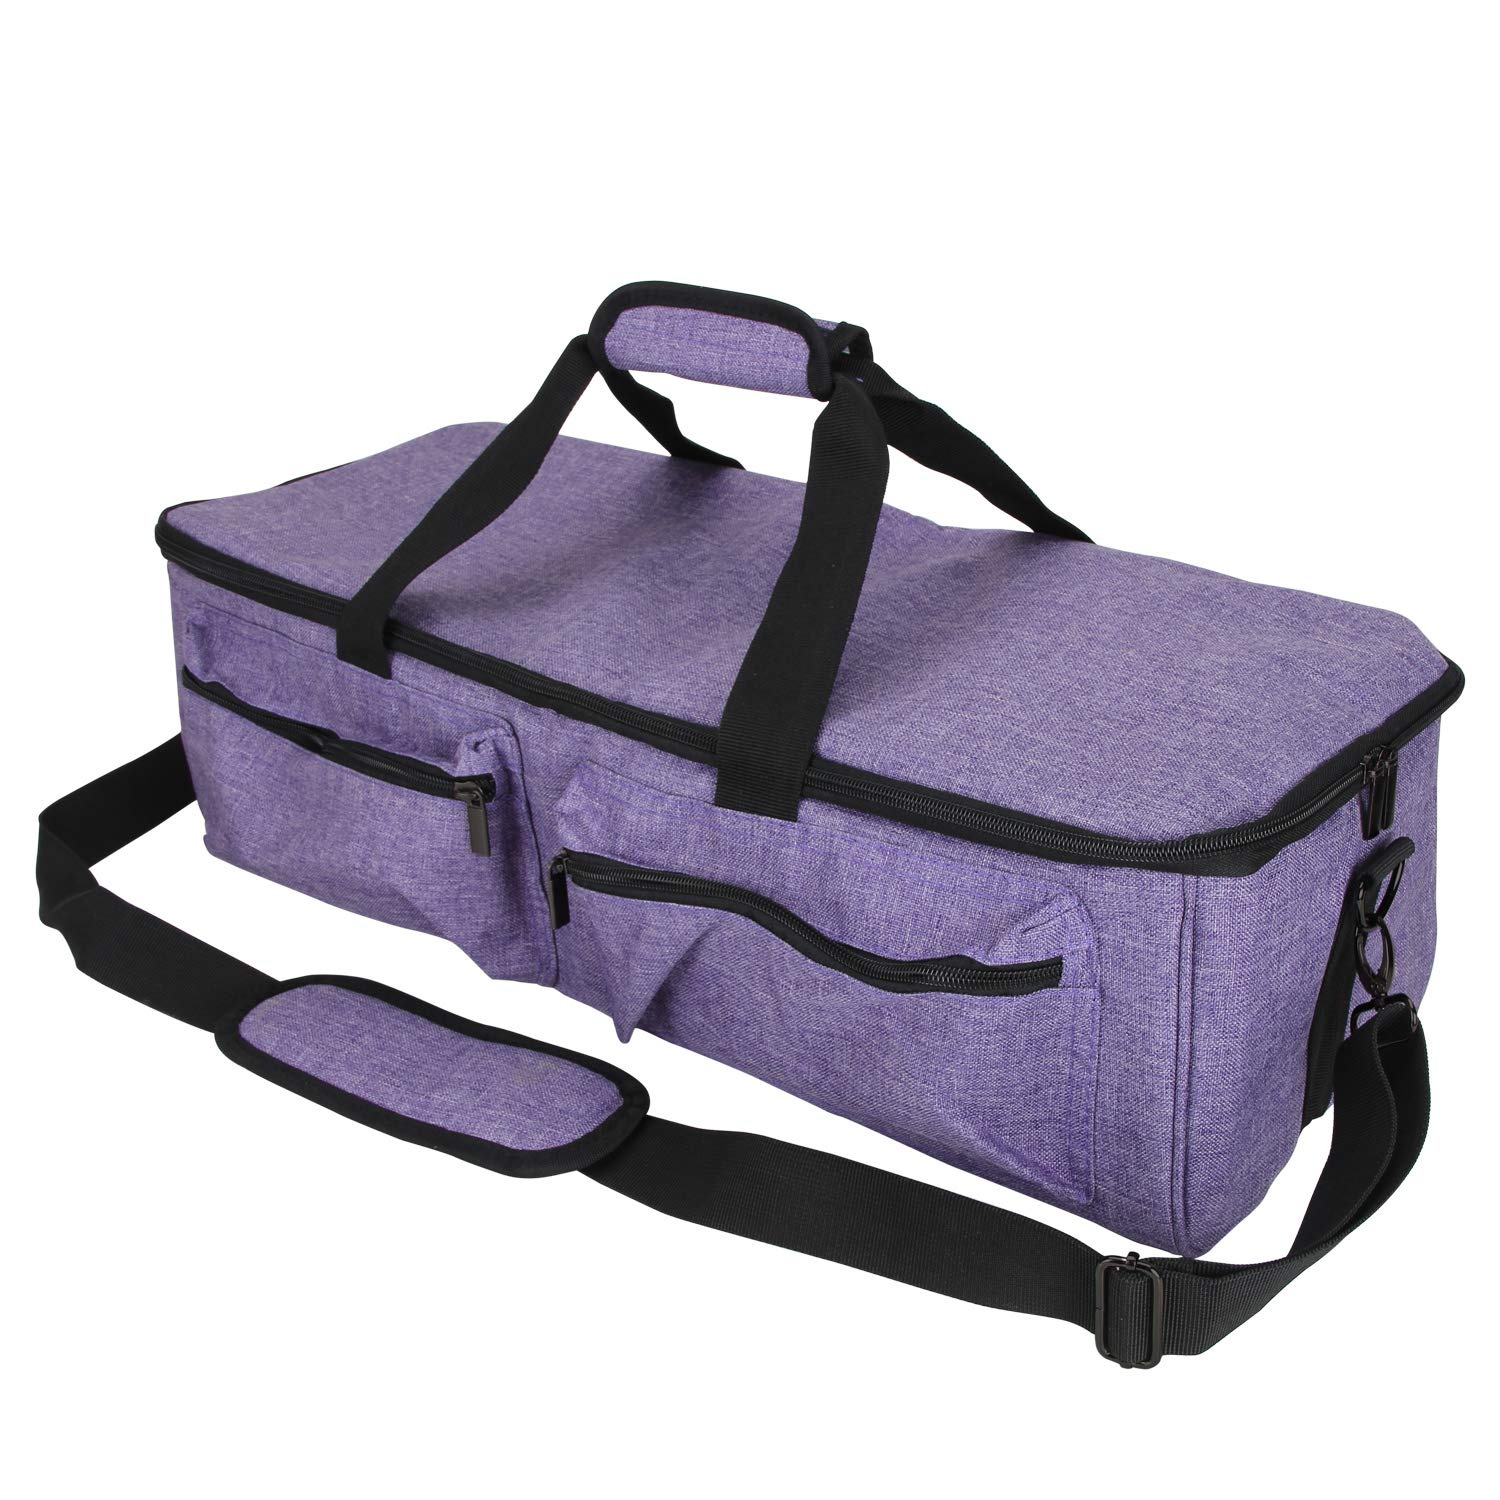 Curmio Carrying Case Compatible with Cricut Explore Air, Air 2 and Maker, Tote Bag Compatible with Cricut Explore Air and Supplies, Purple, No Accessories Included